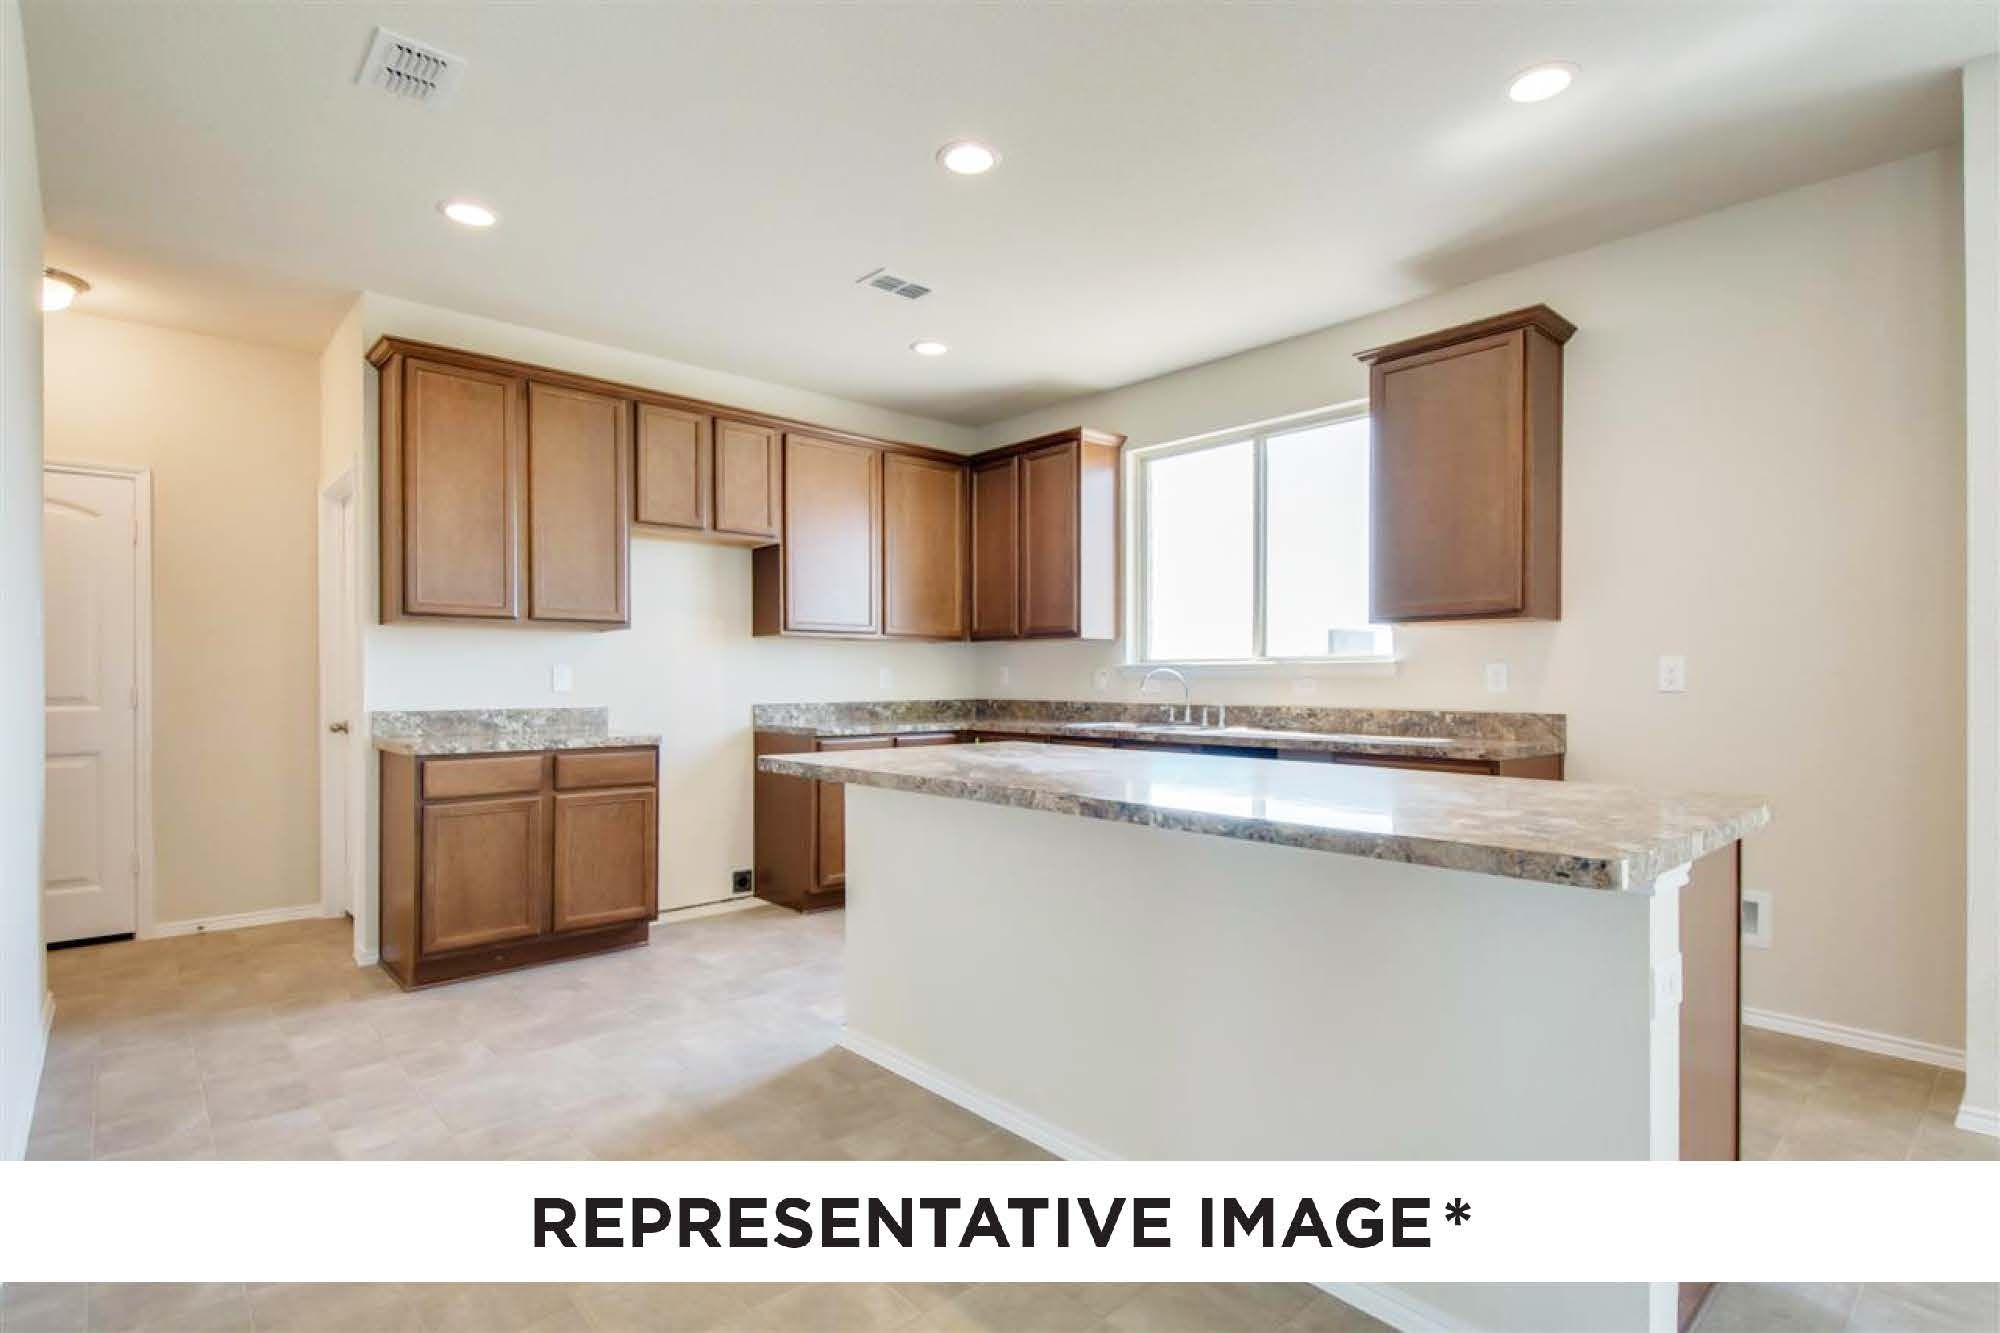 Kitchen featured in the Magnolia By HistoryMaker Homes    in Sherman-Denison, TX